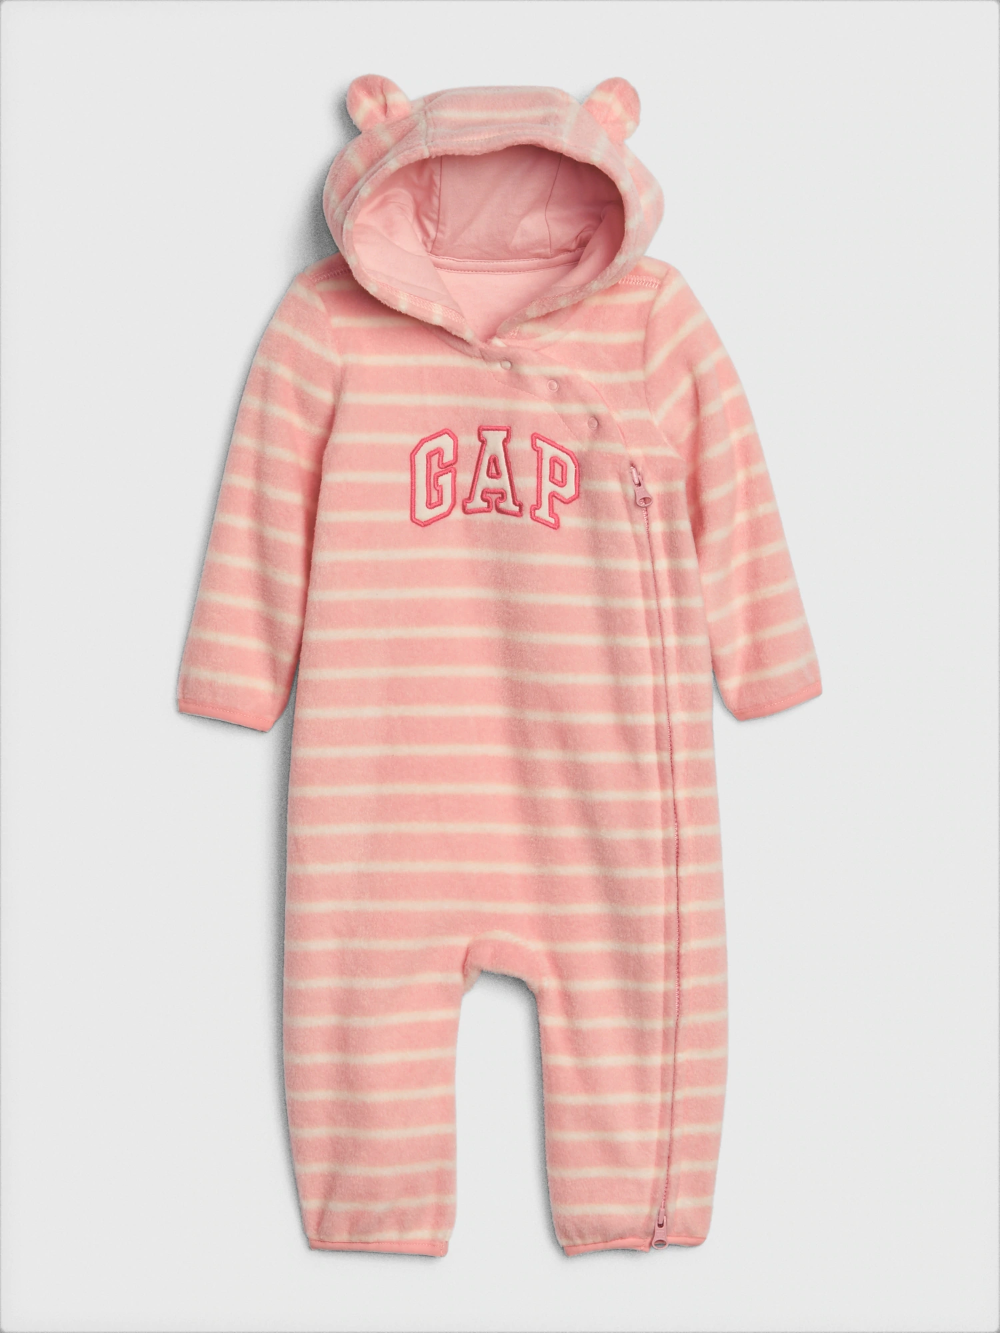 Gap Snap Hooded Romper for Babies//Toddlers